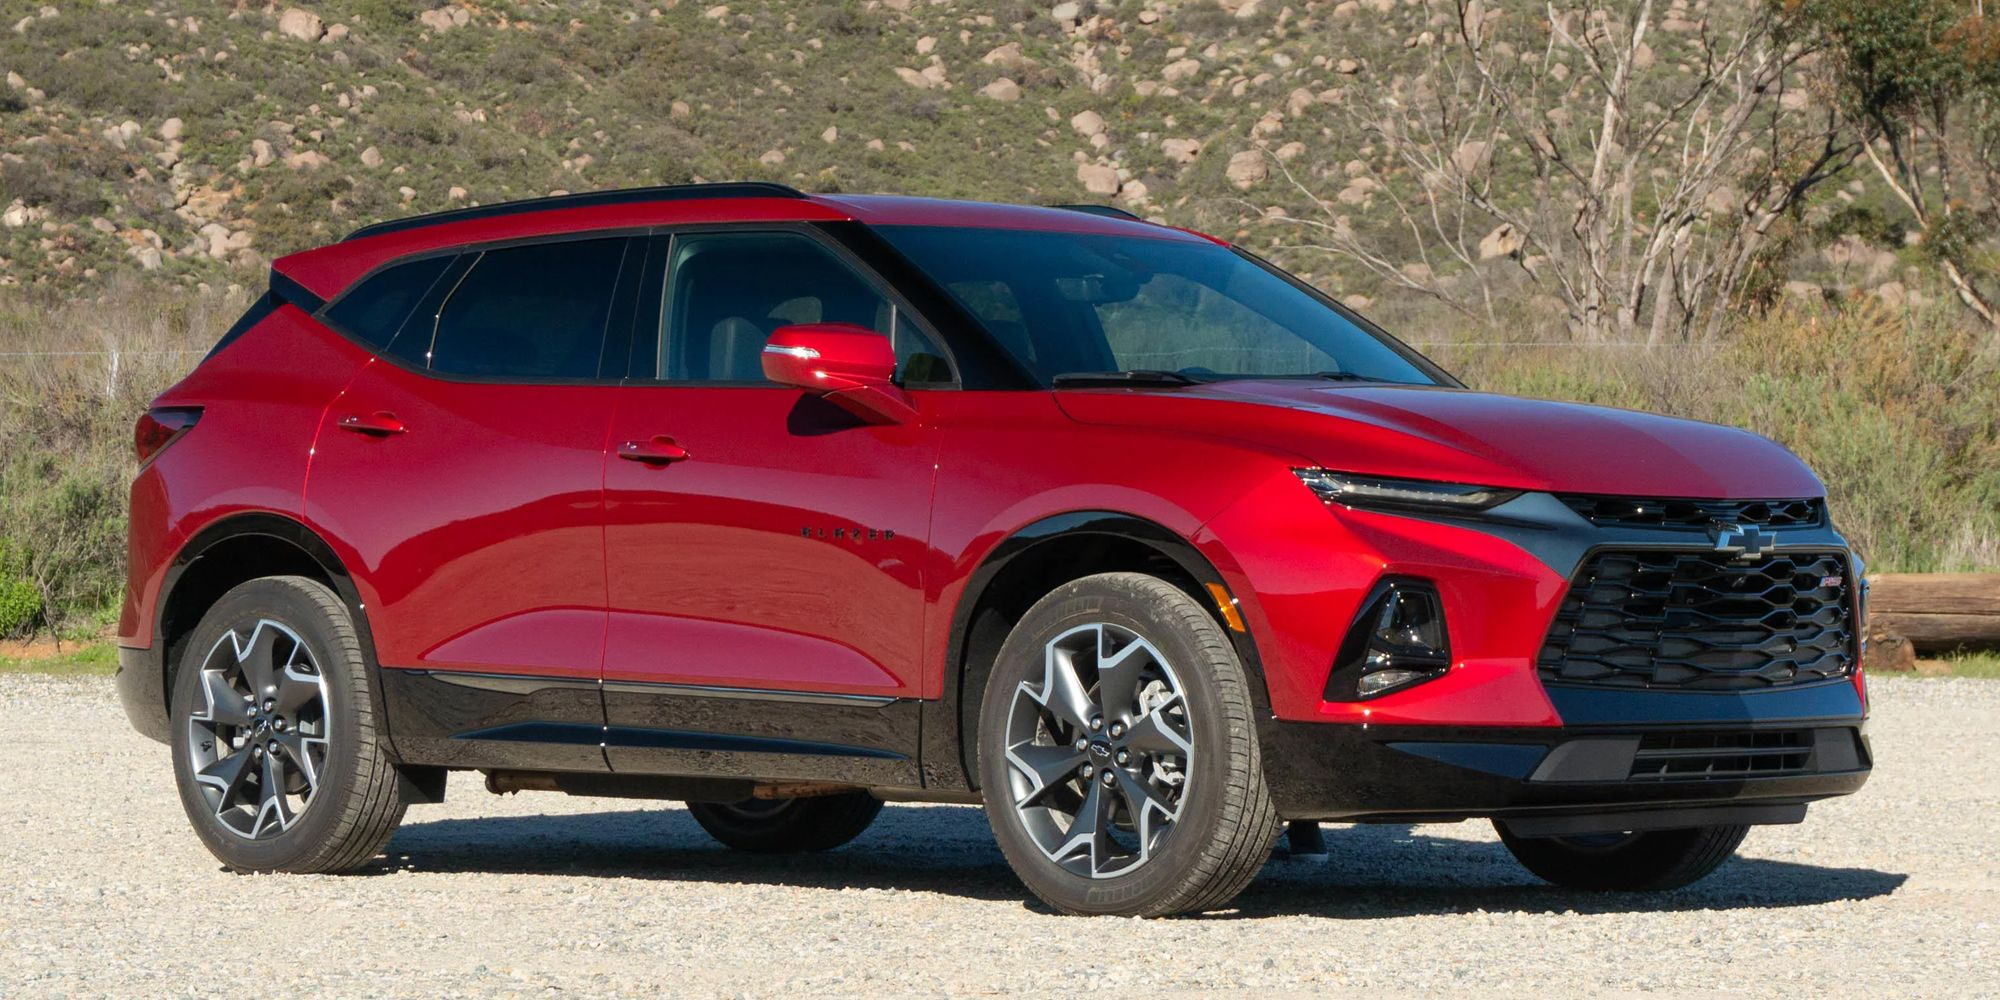 2020 Chevy Blazer: The Coolest Features Found Inside The SUV